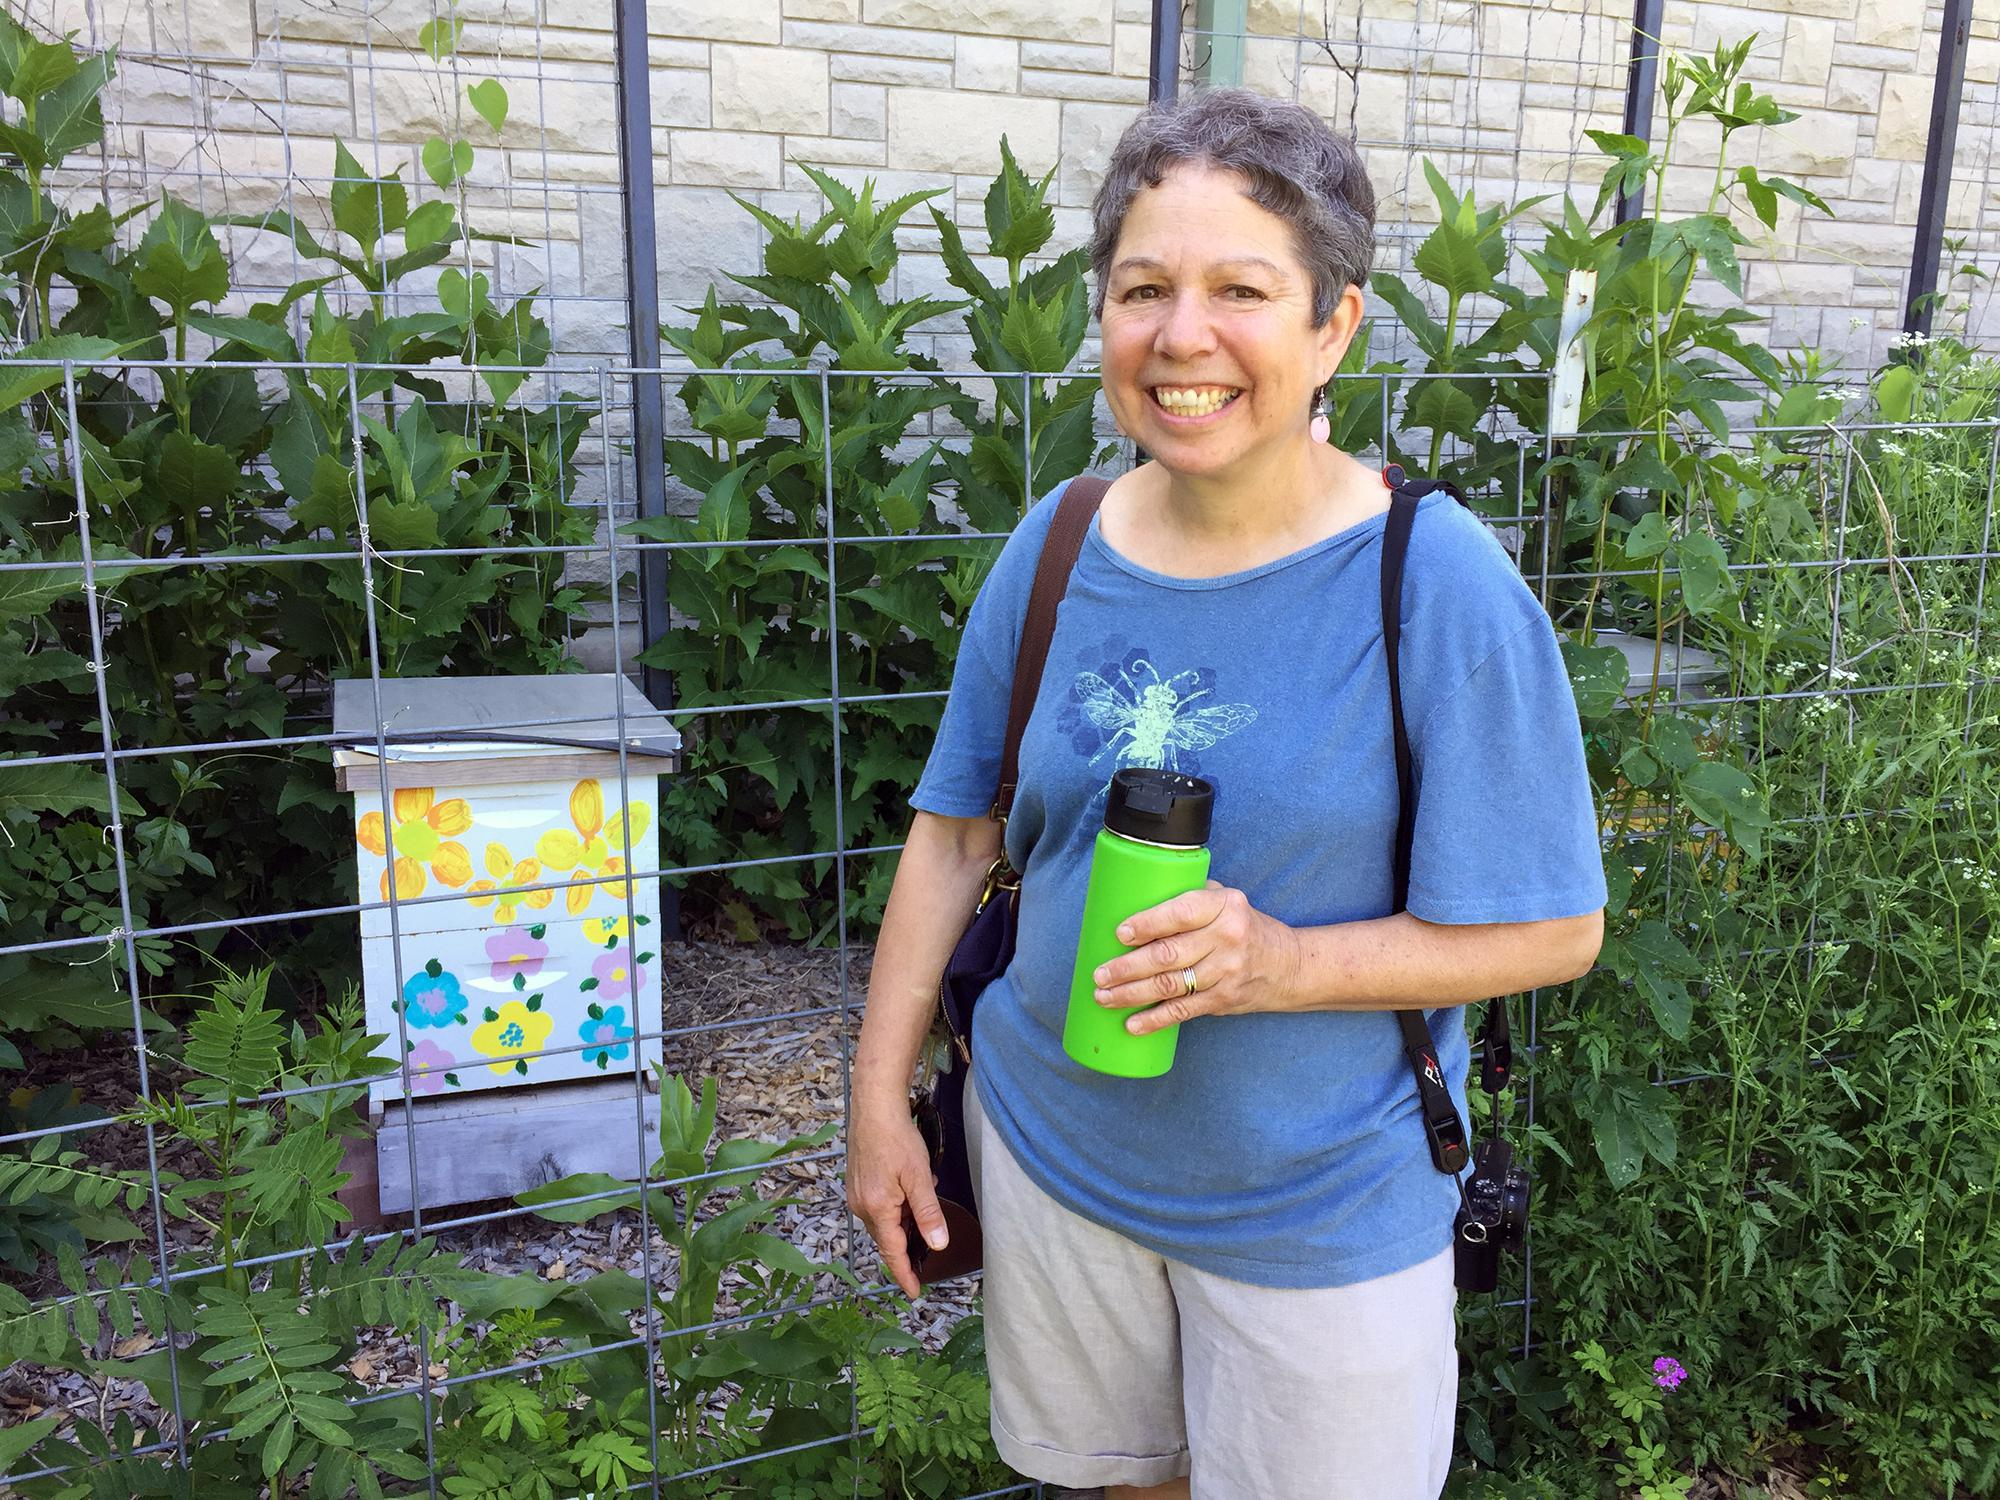 Candi Galen, a University of Missouri biology professor, is studying a way to help farmers identify pollination activity in their fields.